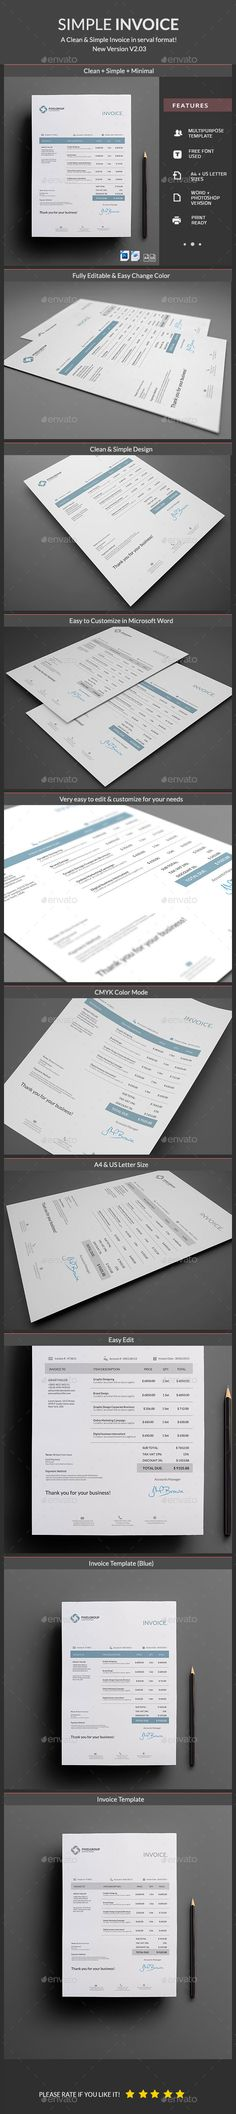 proposal template for word%0A Invoice A  Template PSD  MS Word